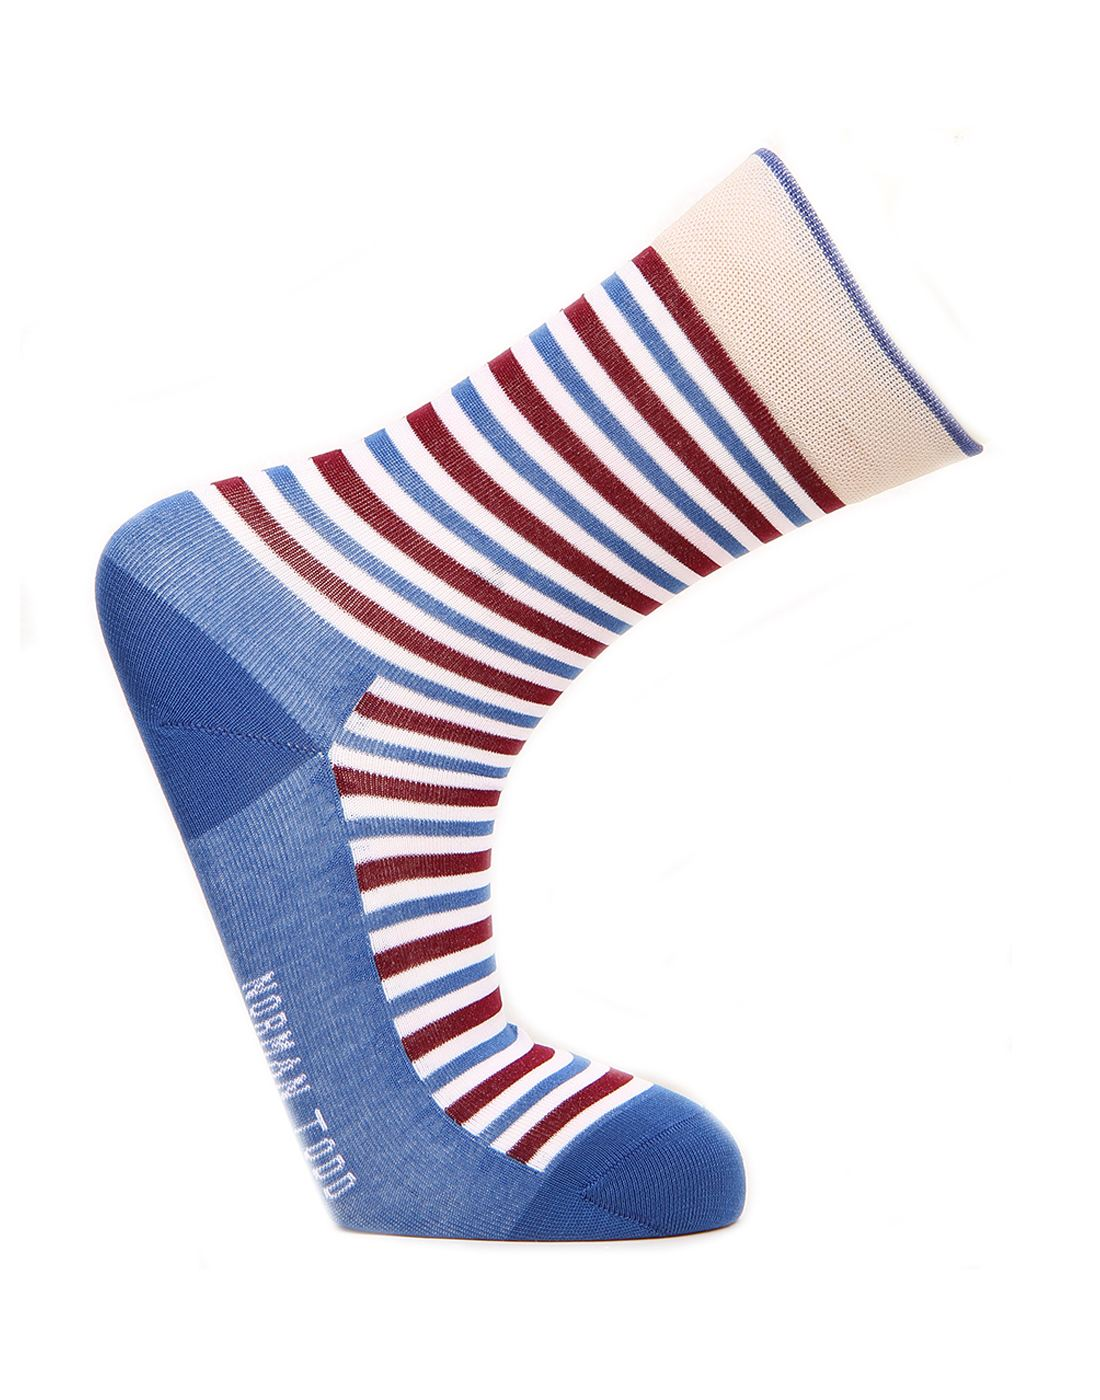 Norman Todd Women Multi-Coloured Mid-calf Length Socks